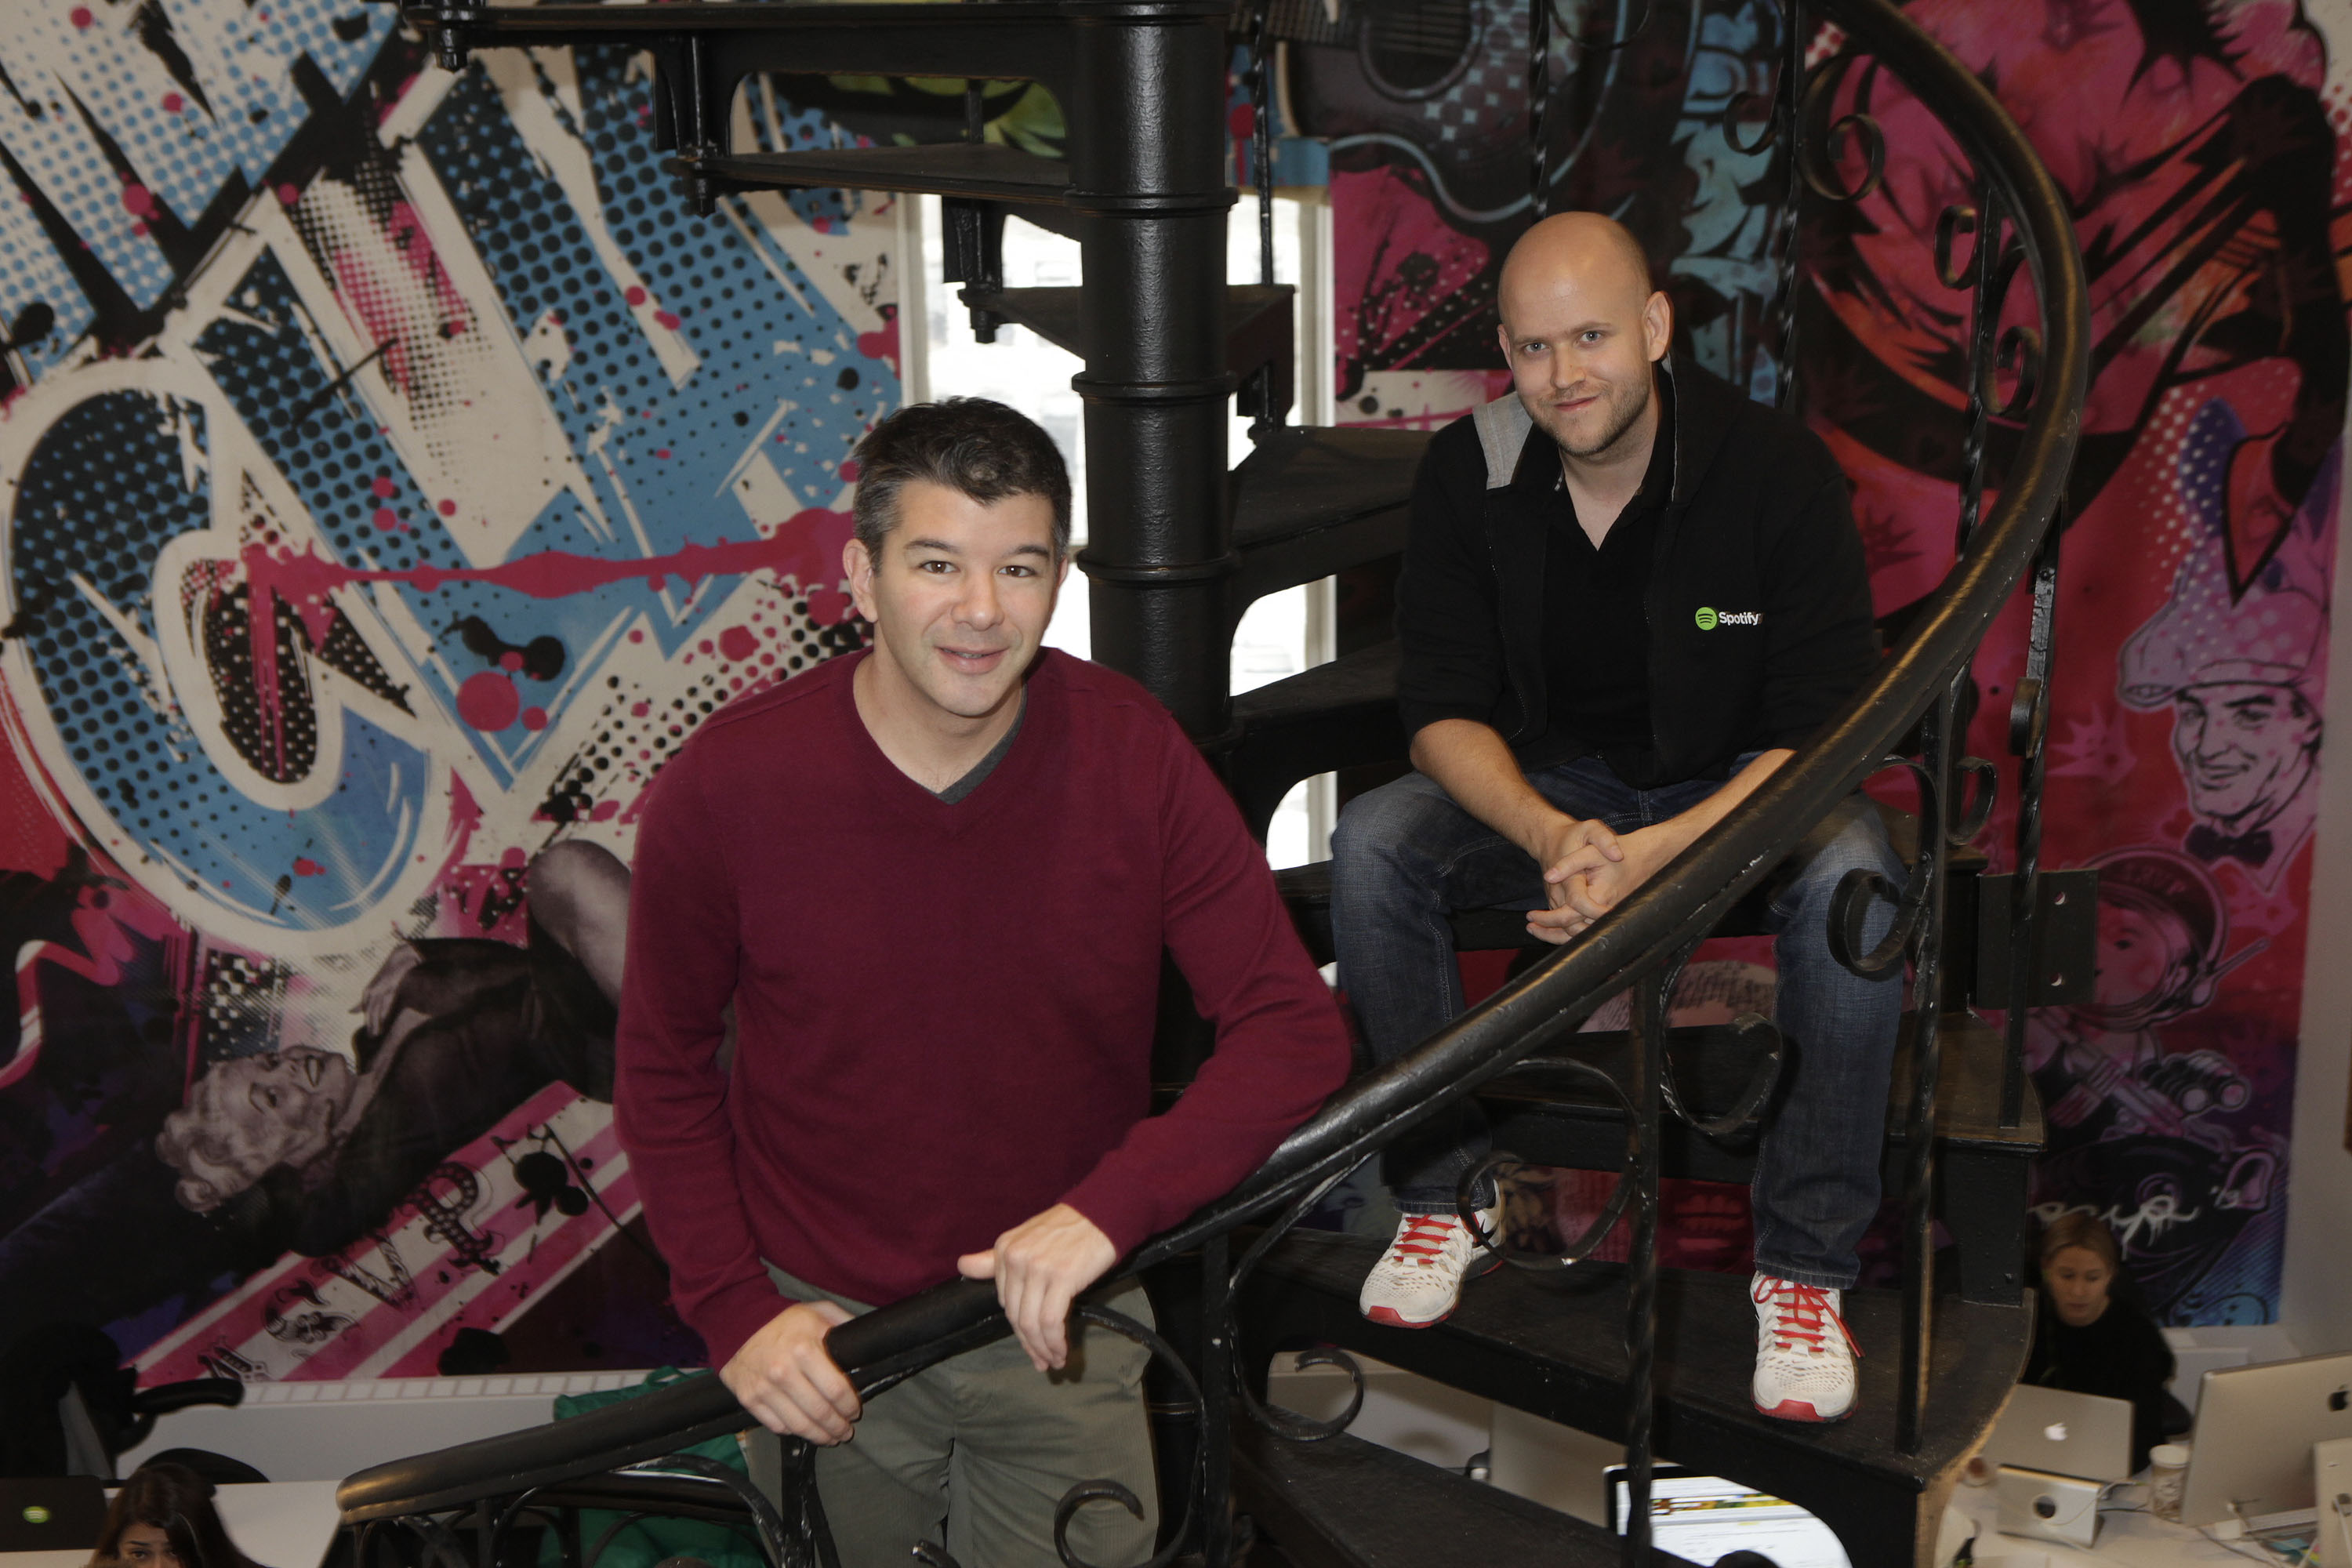 Uber CEO Travis Kalanick and Spotify CEO Daniel Ek.